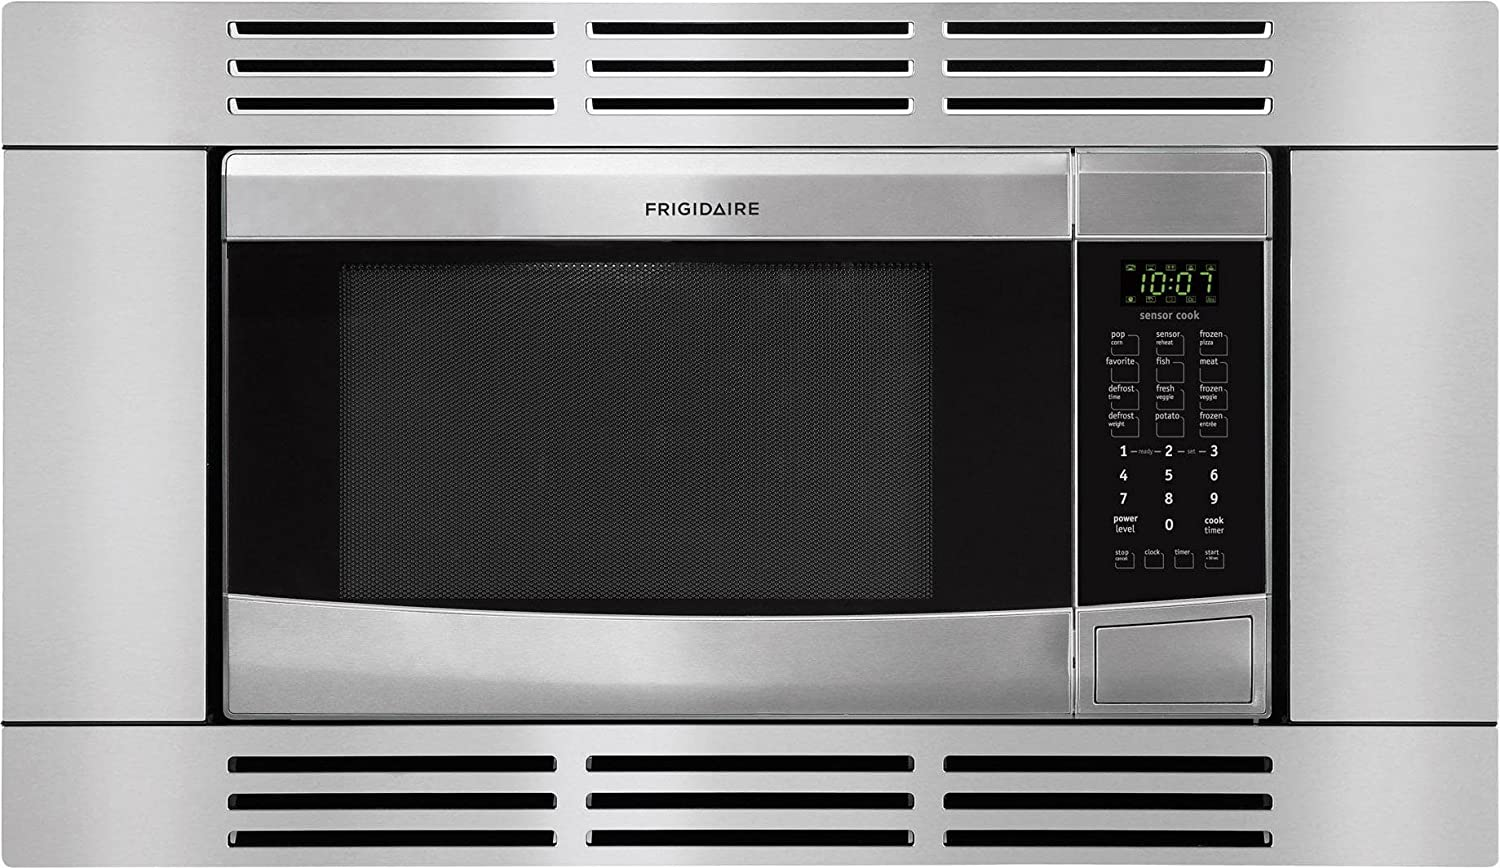 Ft Frigidaire FFMO1611LS1.6 Cu Stainless Steel Countertop Microwave